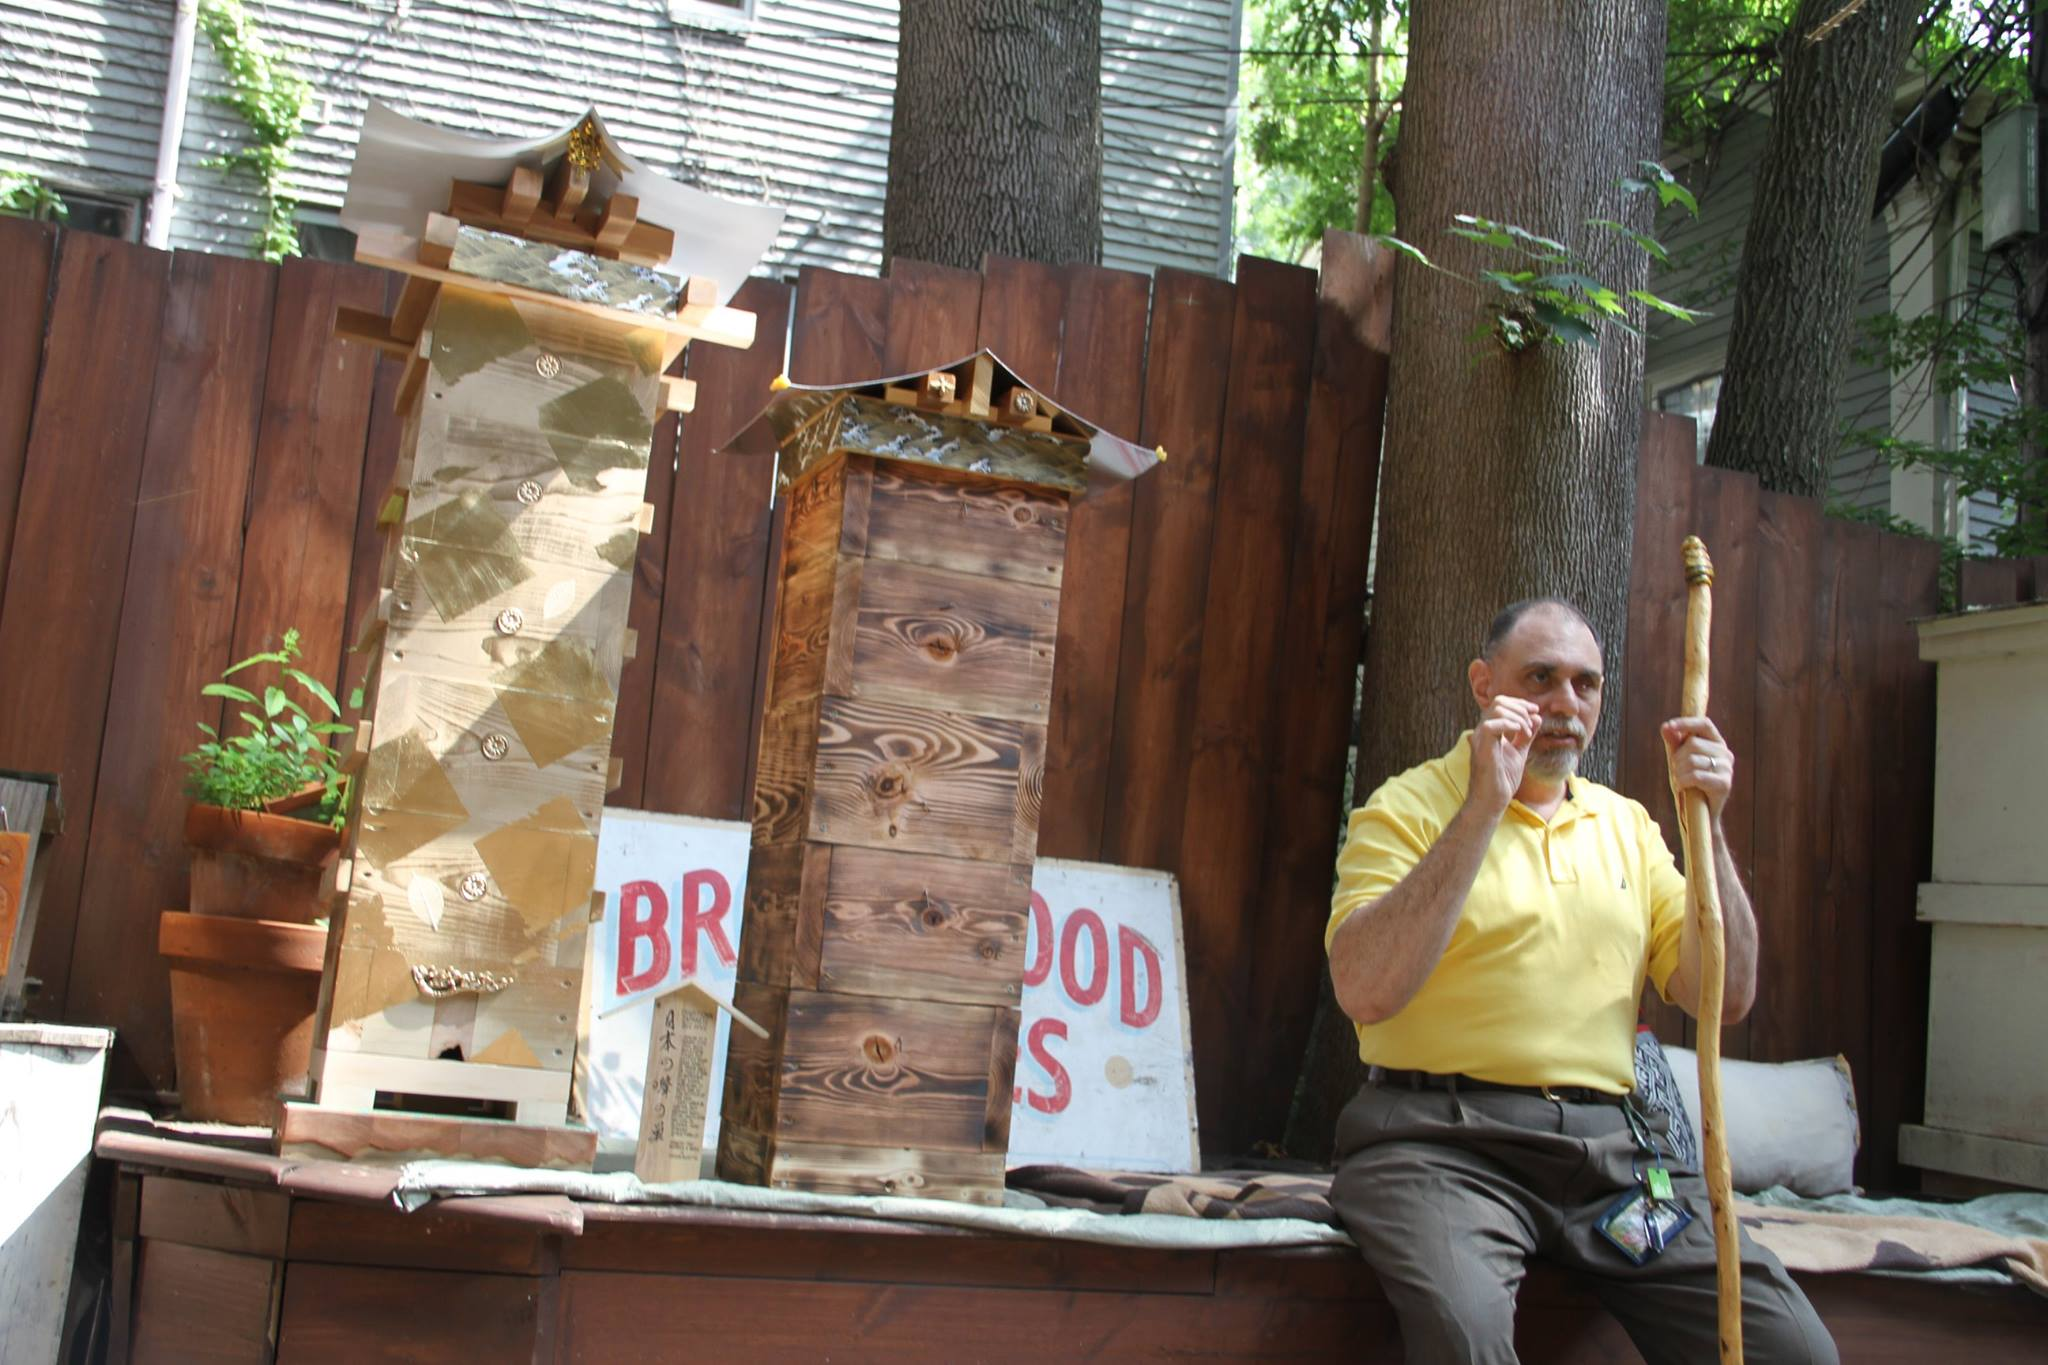 The Buddhas Bees